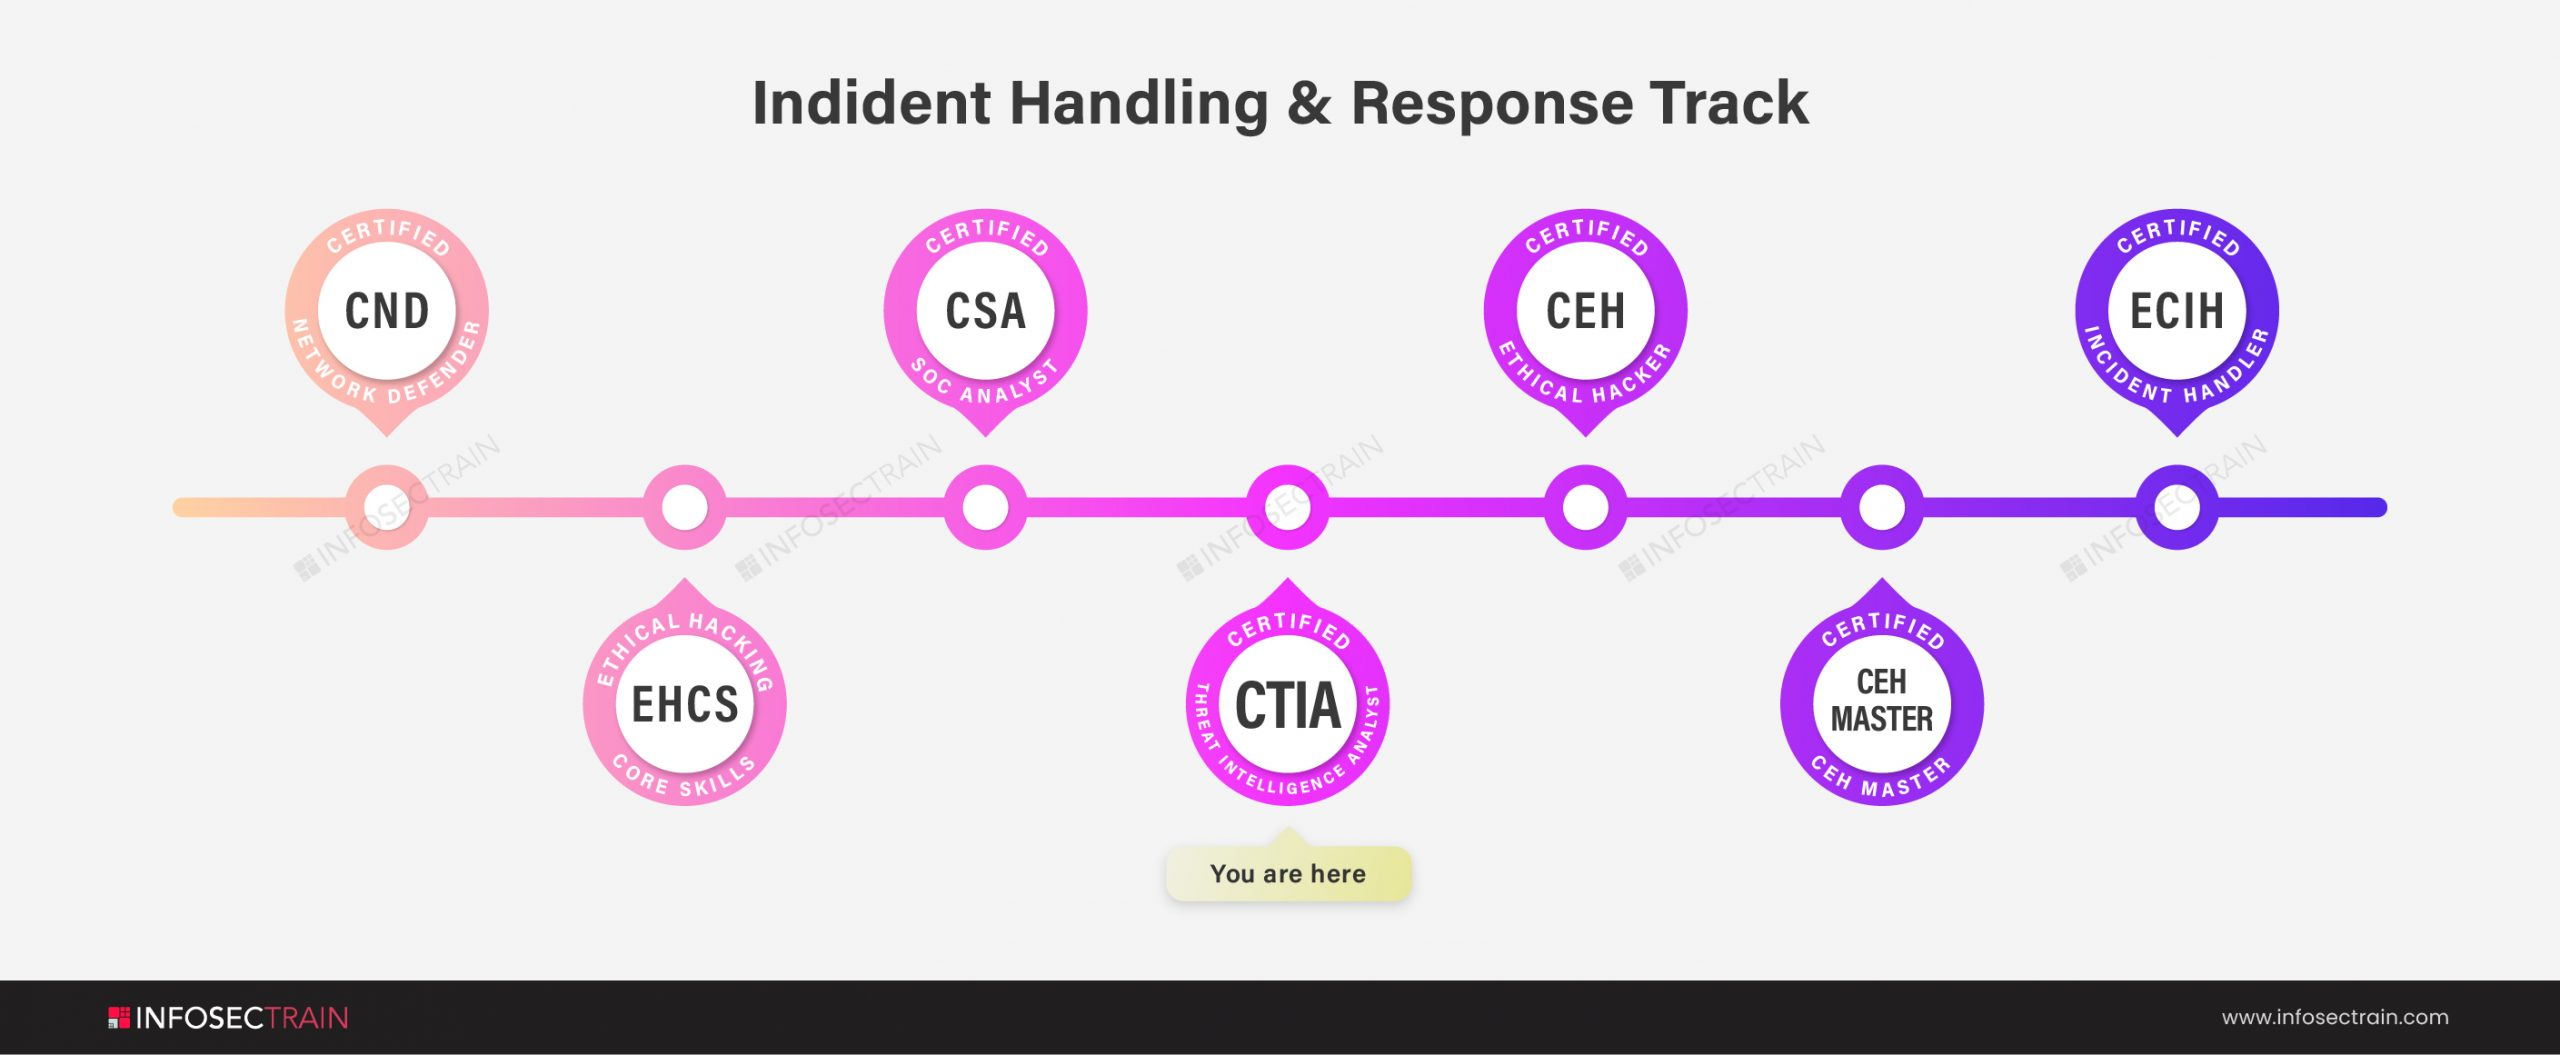 Incident Handling and Response Path: